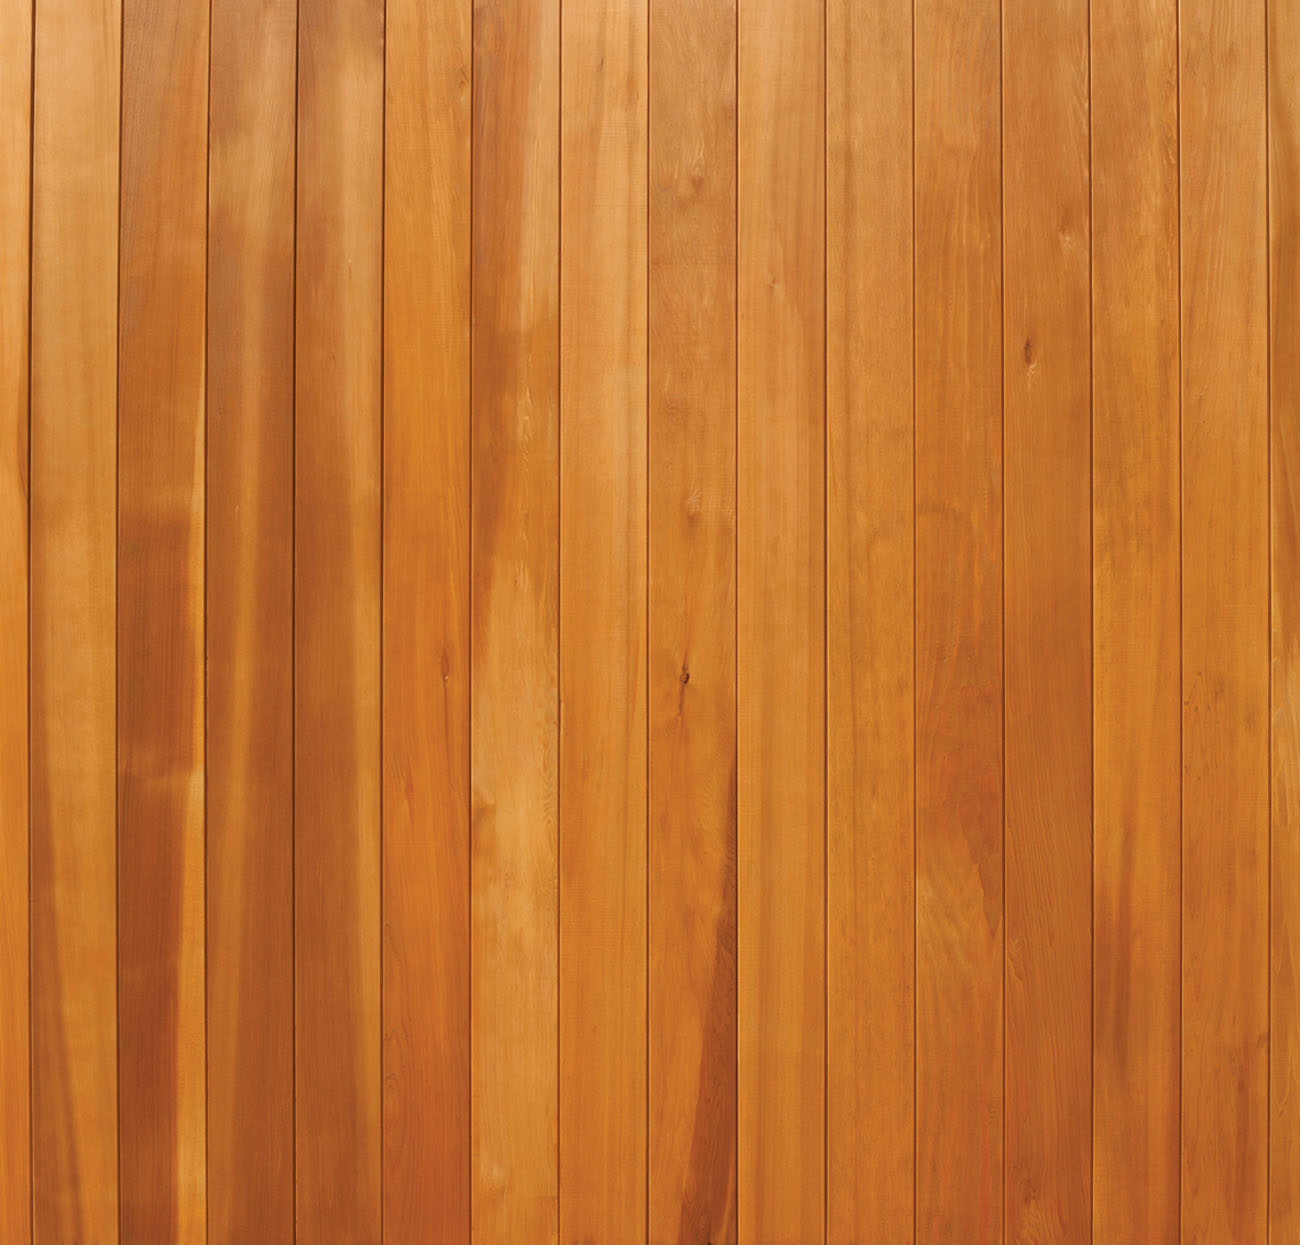 Uxbridge panel-built Cedar